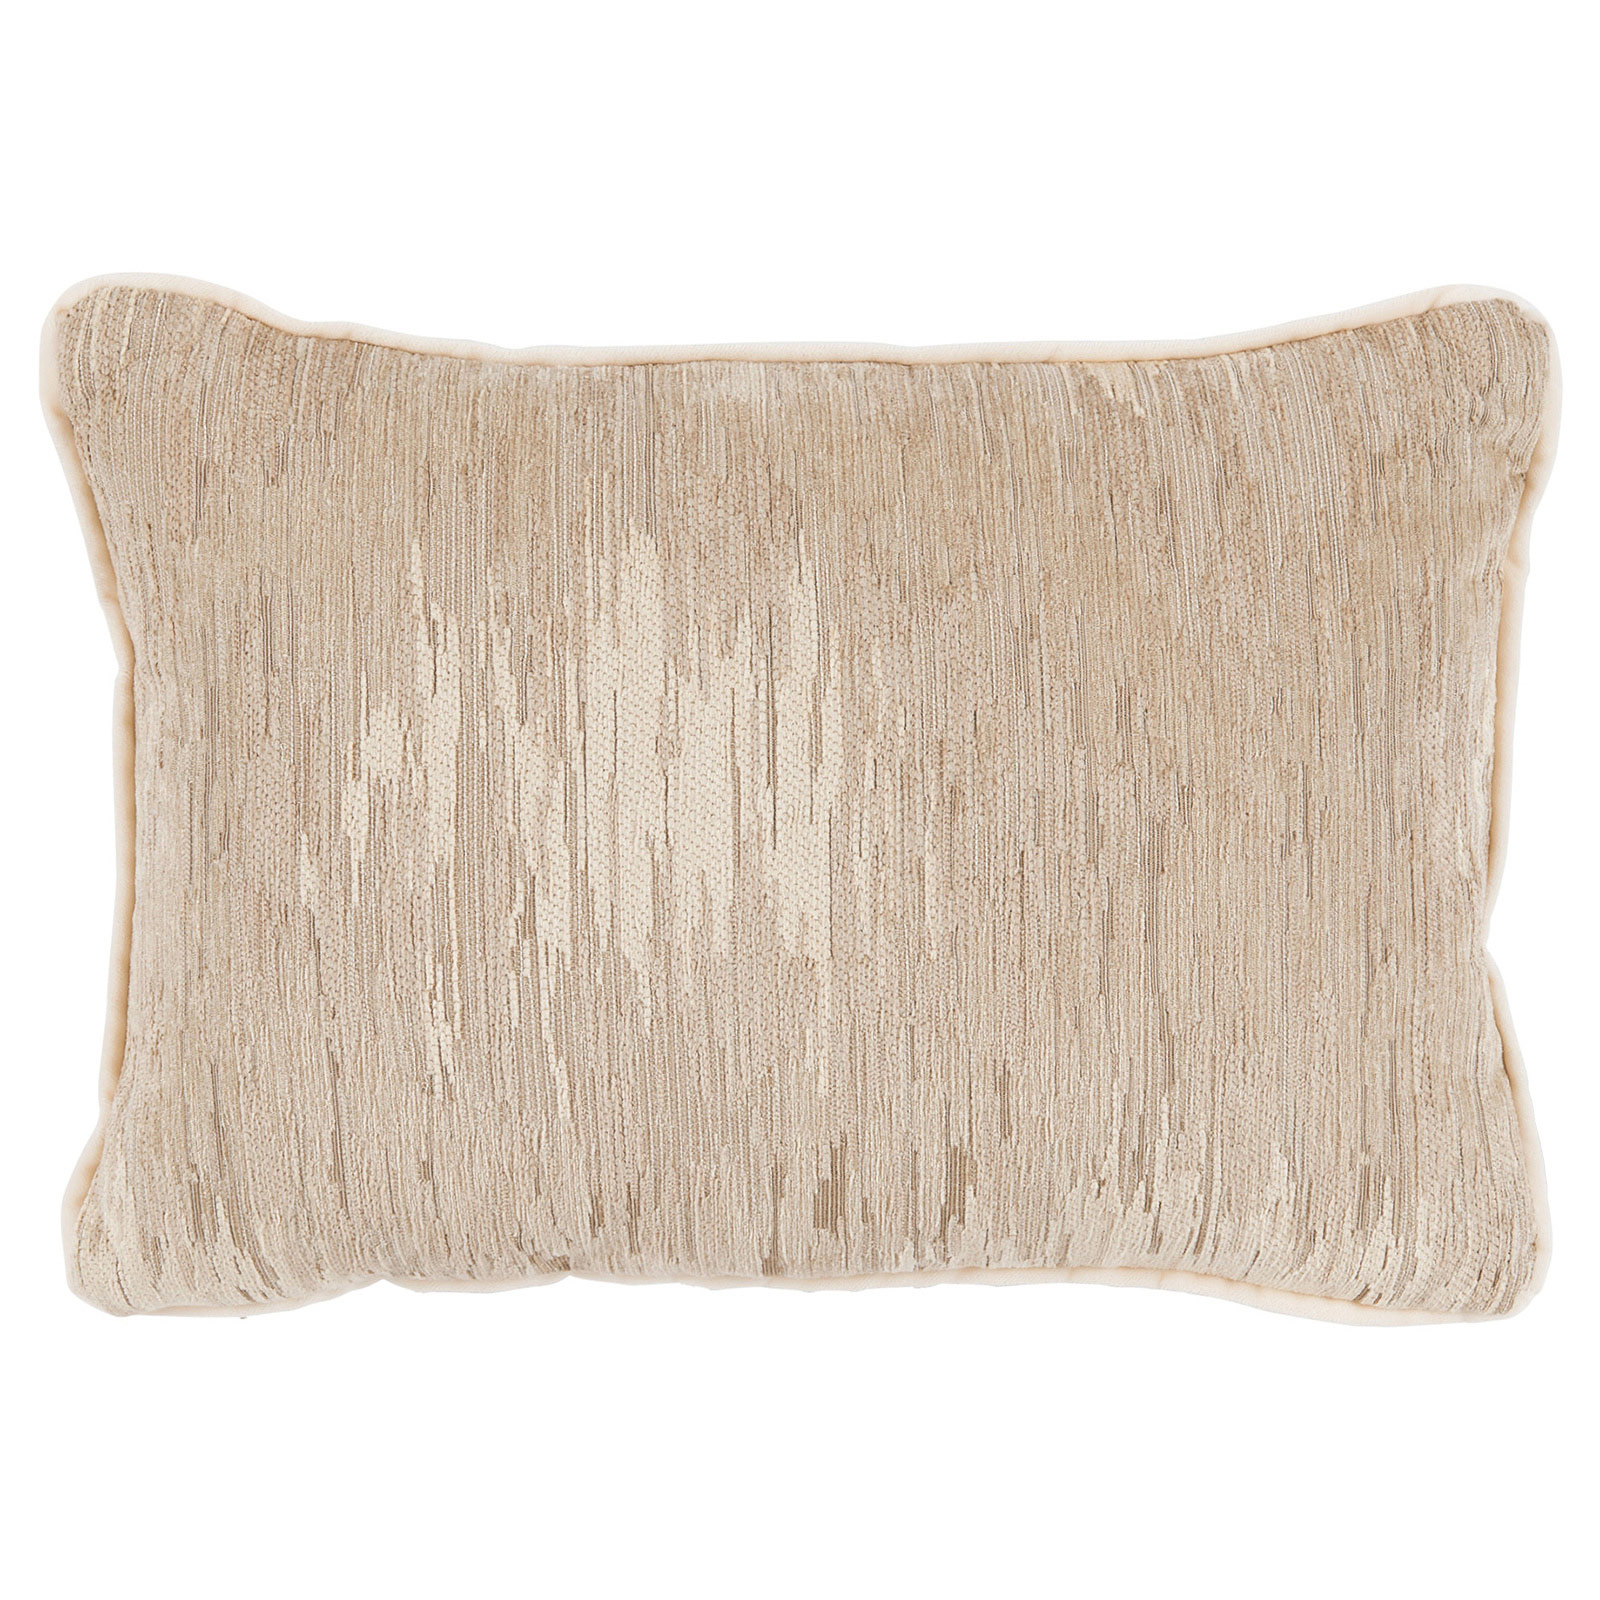 Oz Modern Classic Champagne Beige Linear Pillow - 13x19